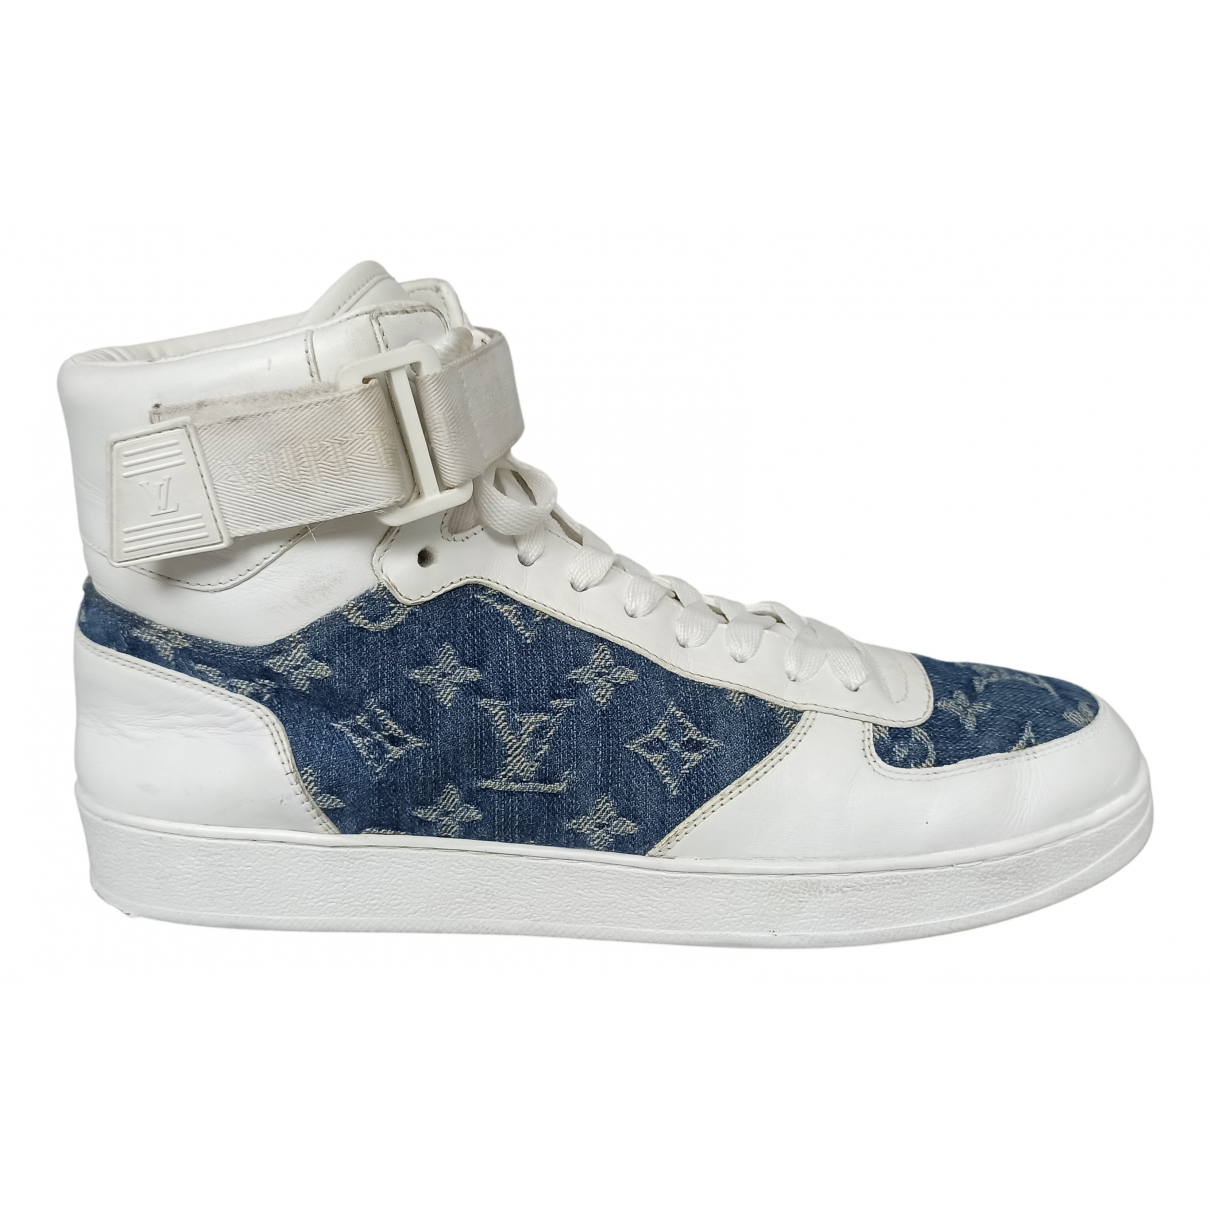 Louis Vuitton N White Leather Trainers for Men 42 EU